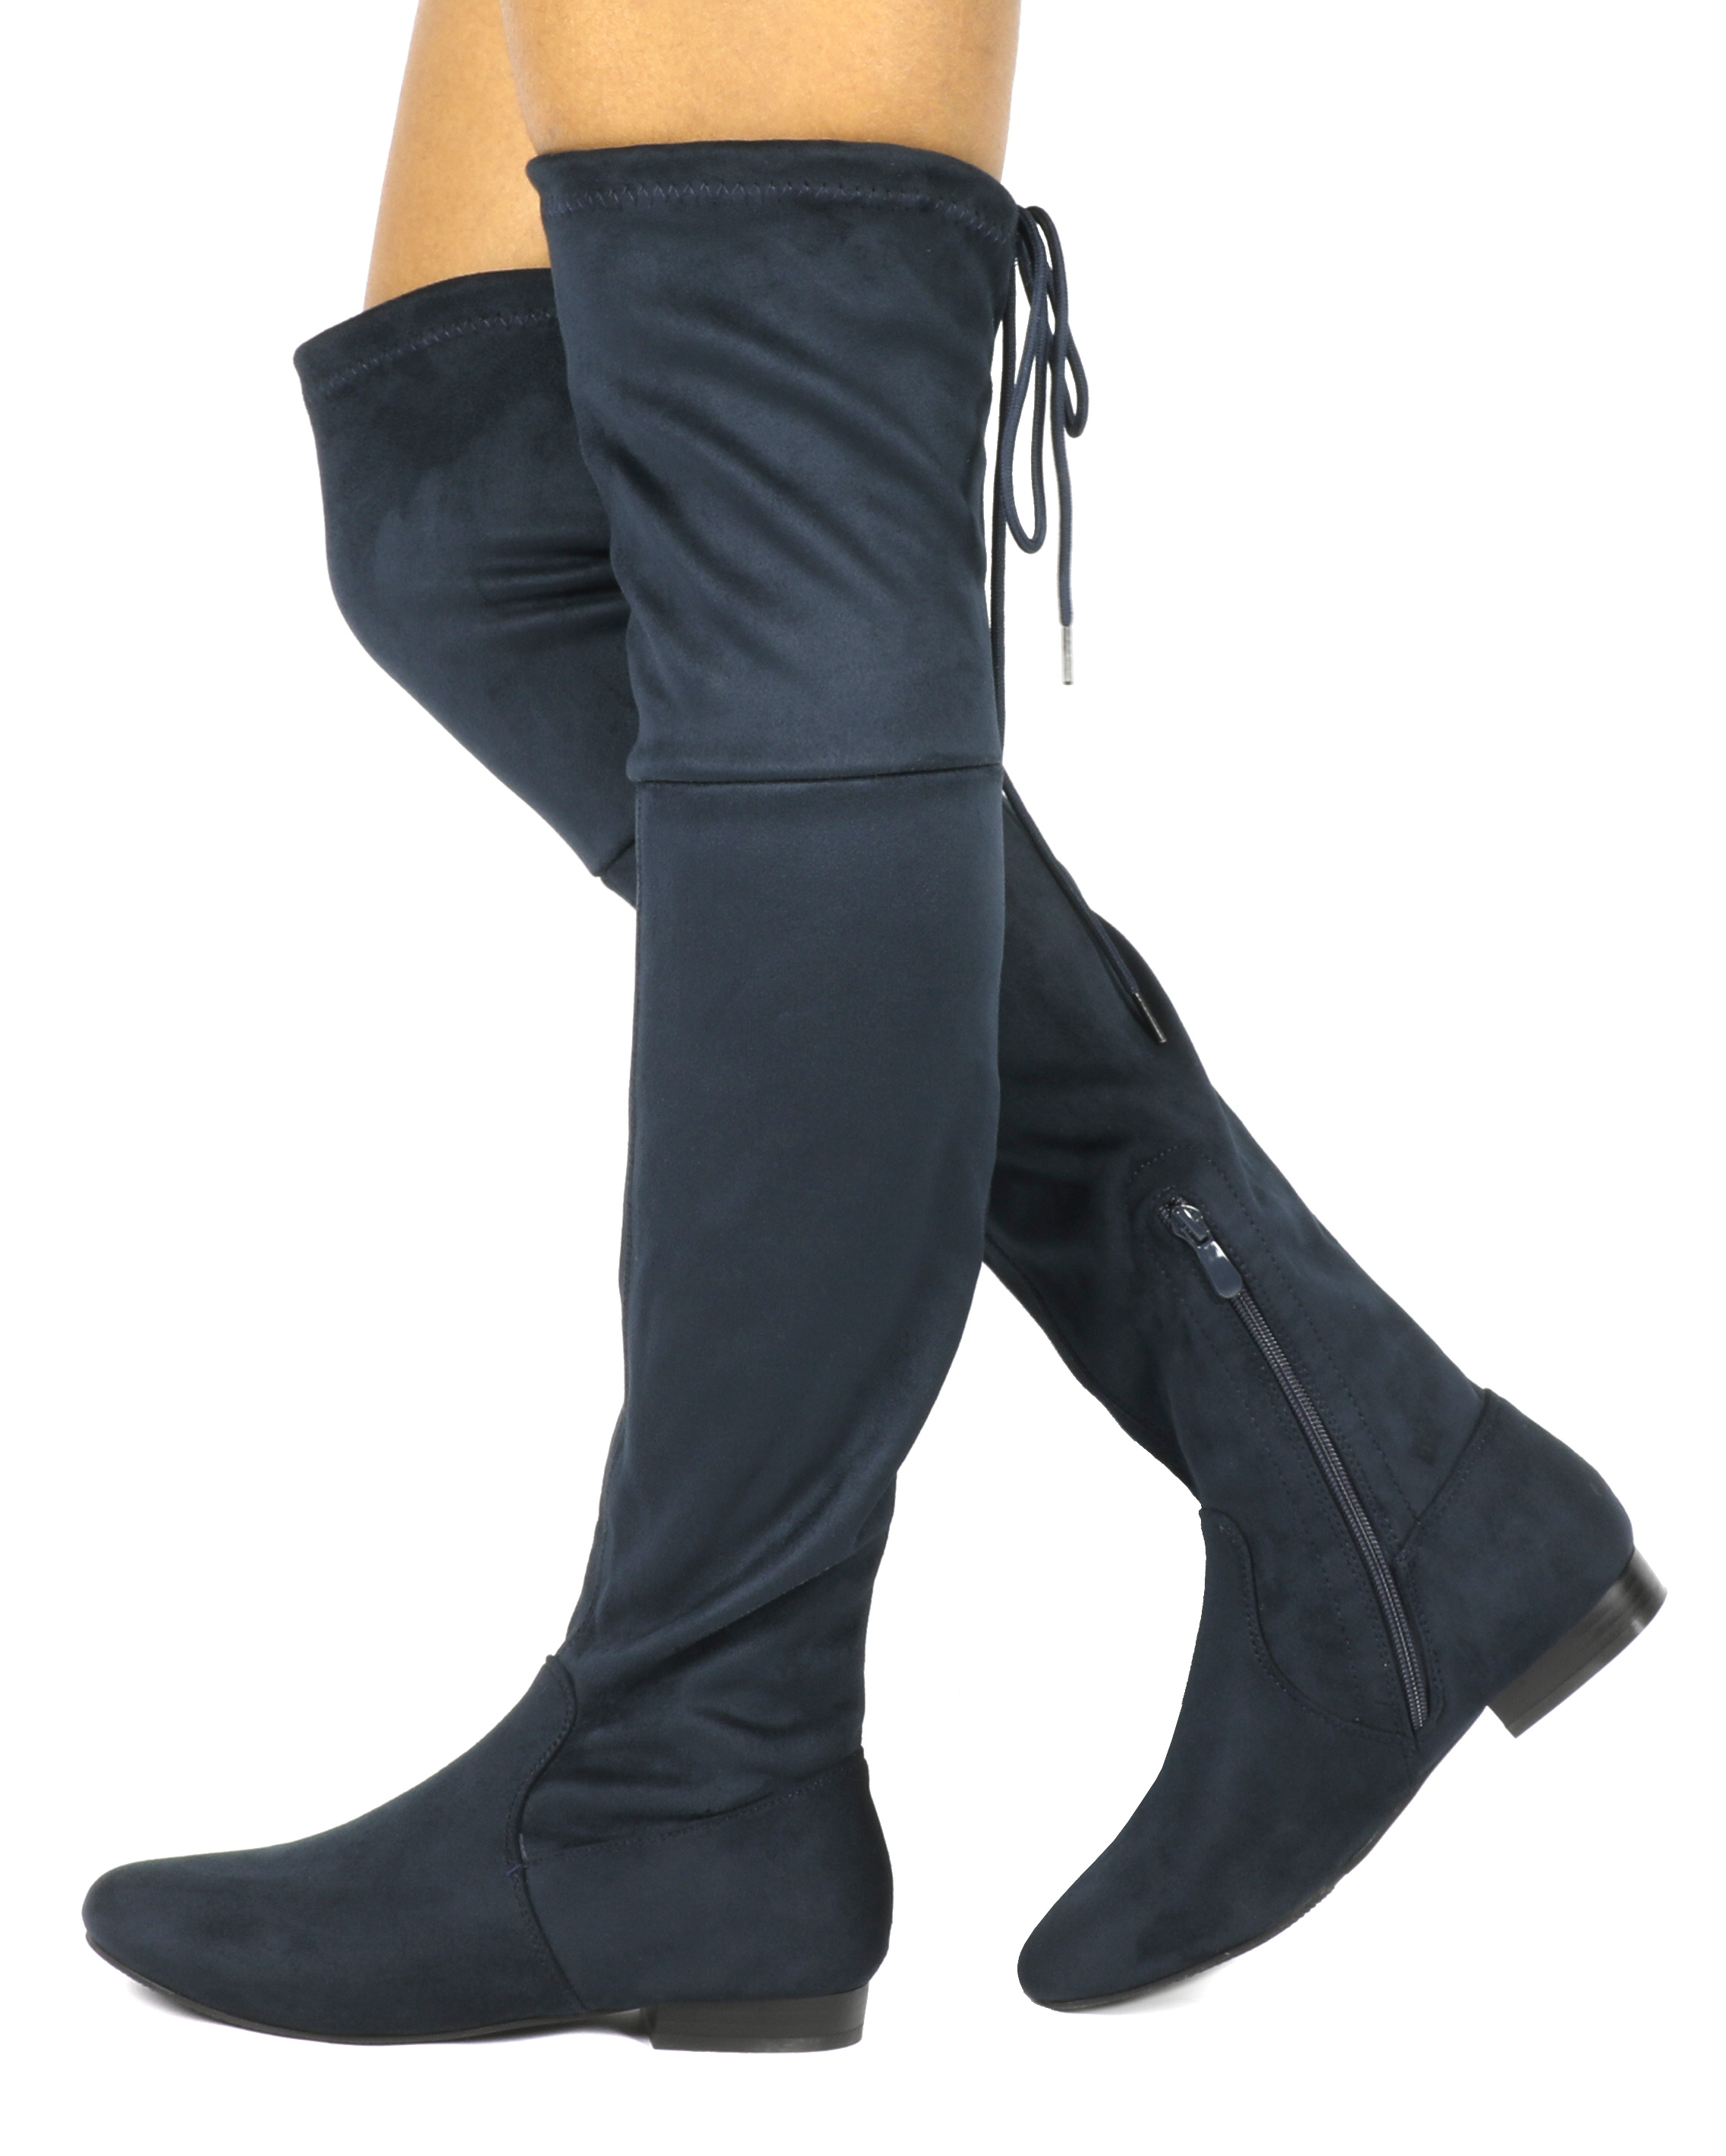 Women-Thigh-High-Flat-Boots-Stretchy-Drawstring-Tie-Fashion-Over-The-Knee-Boots miniatuur 19